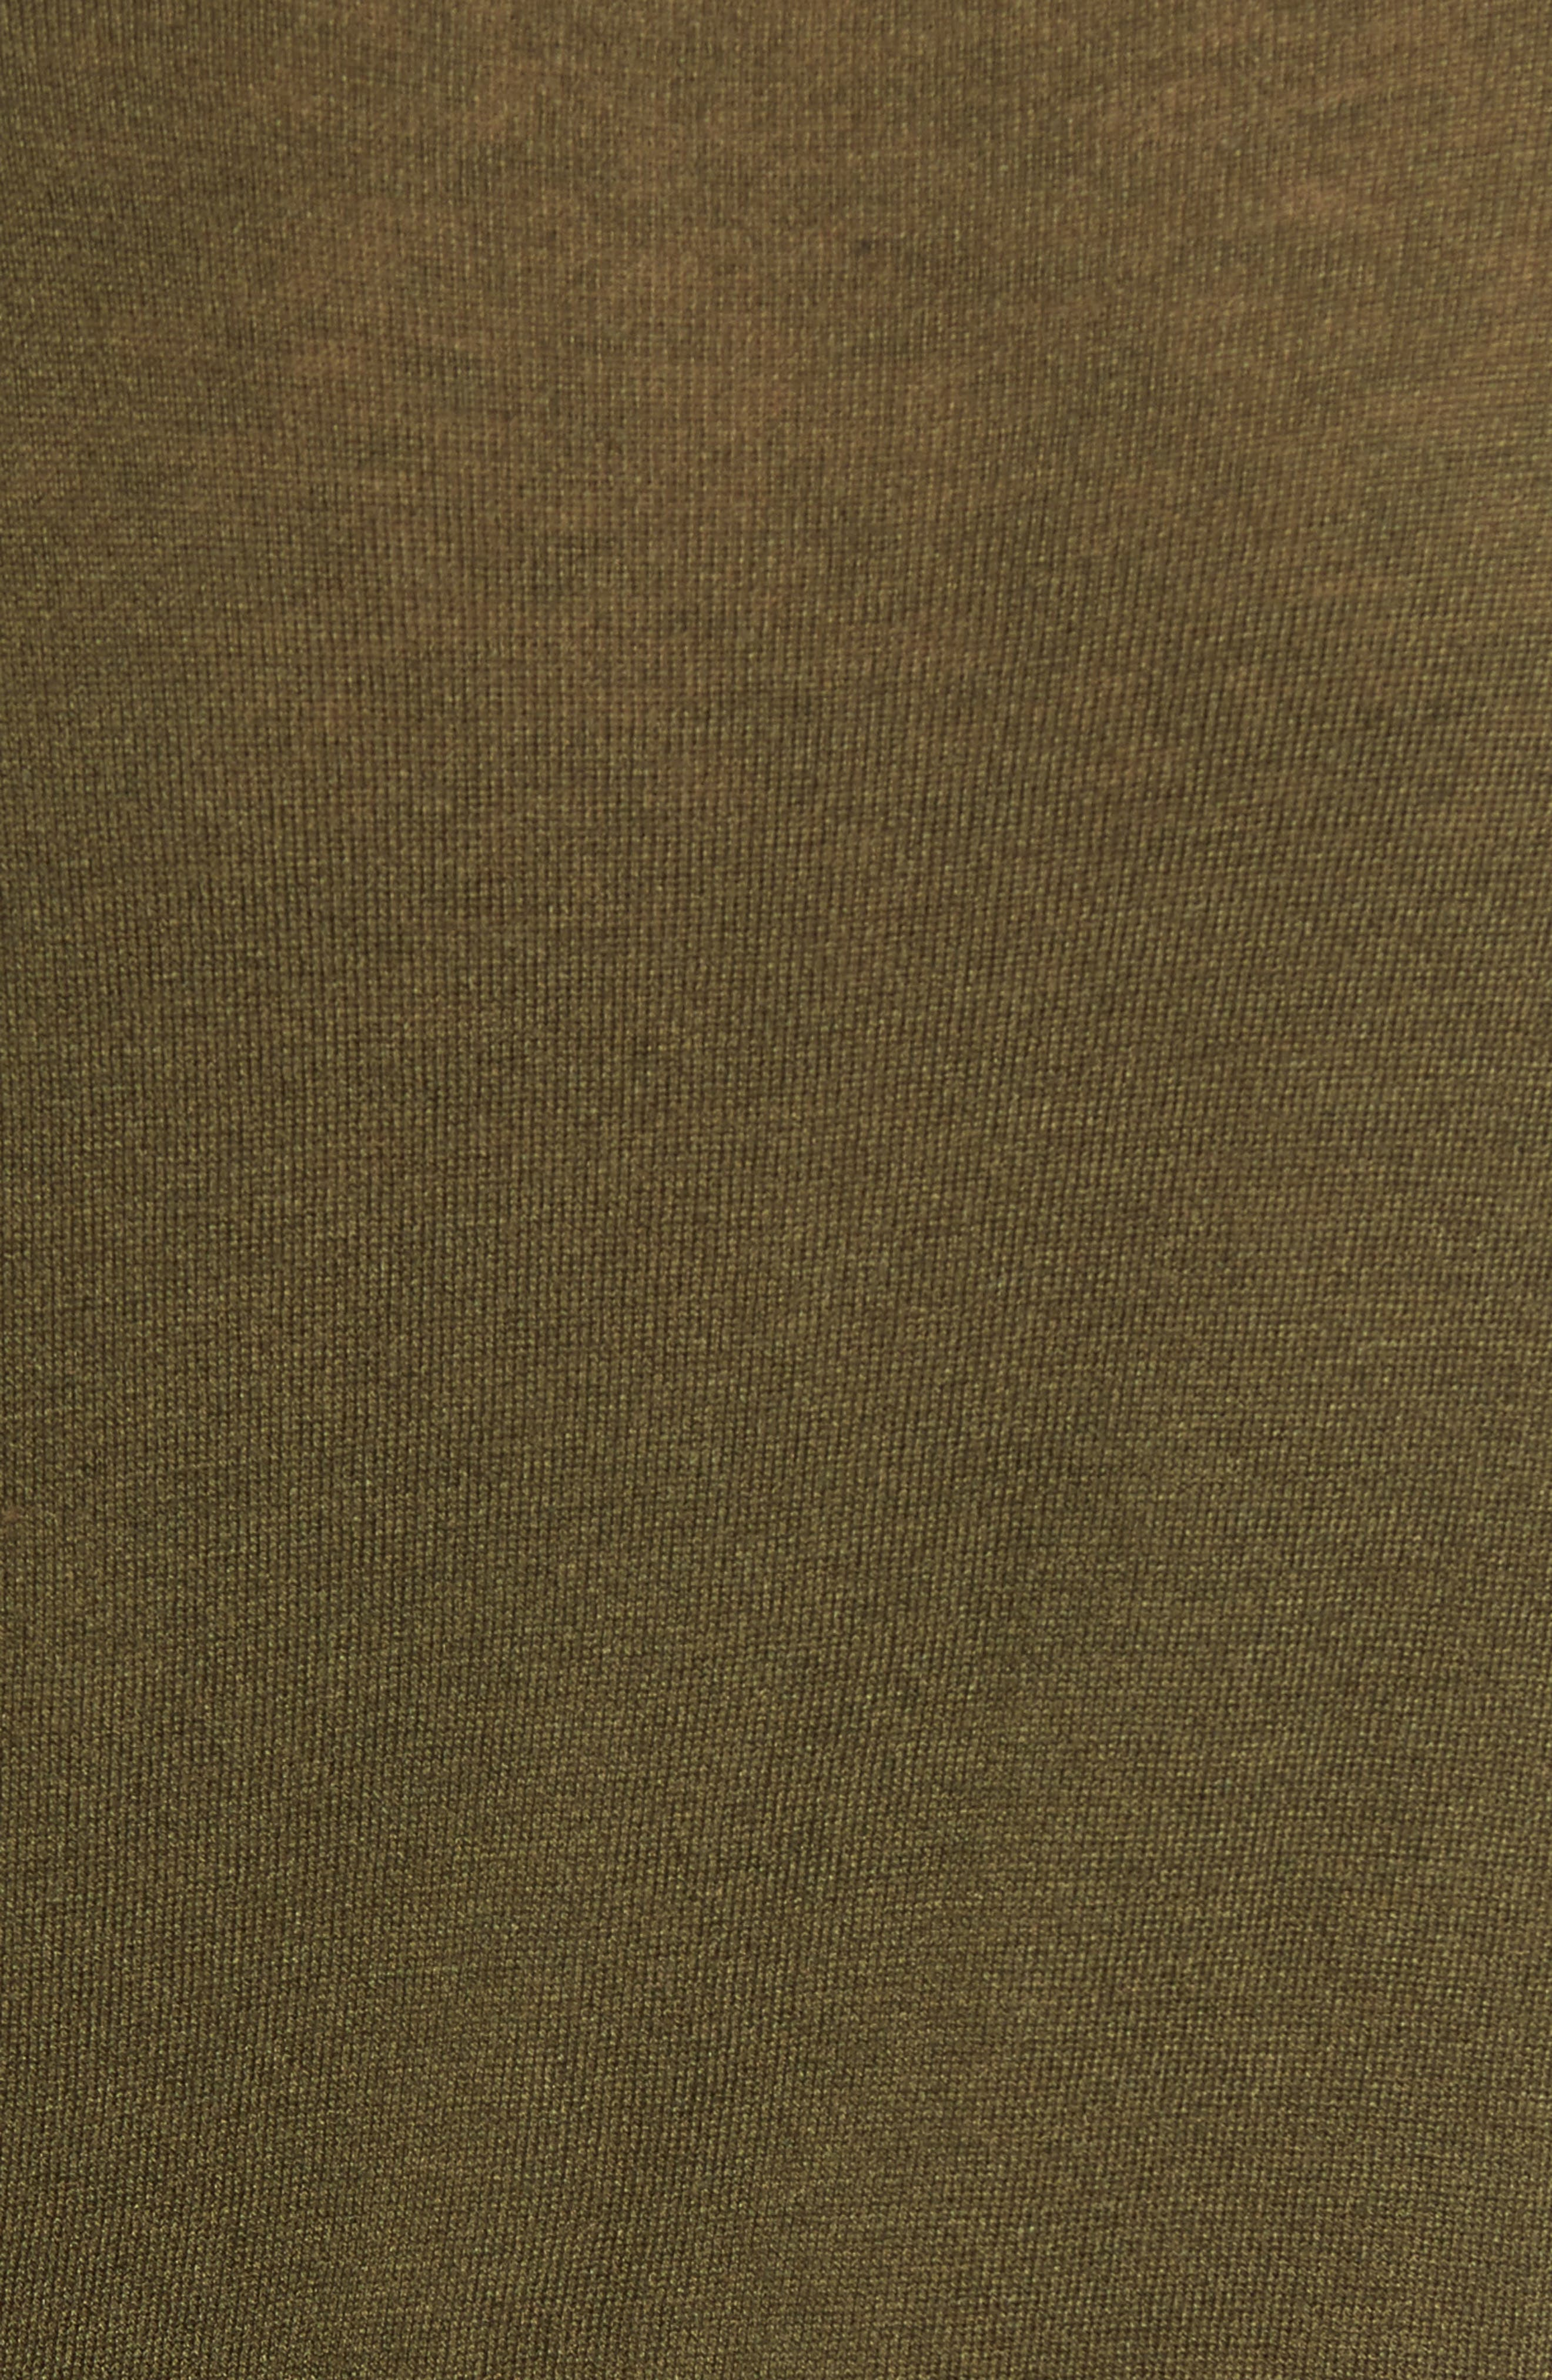 Modern Tie Front Sweater,                             Alternate thumbnail 5, color,                             Foliage Green